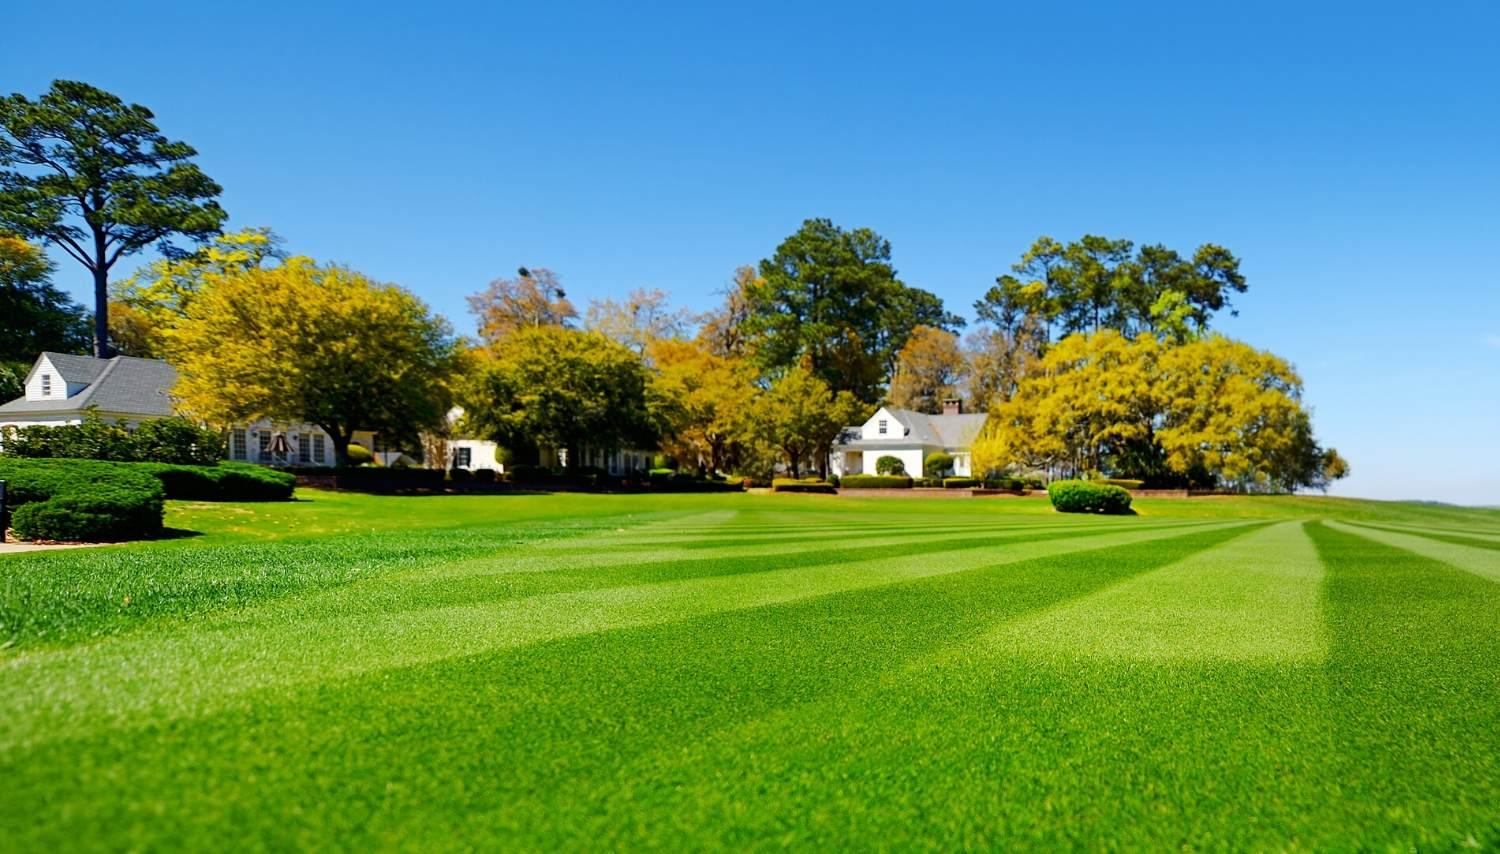 Affordable Lawn Care Services